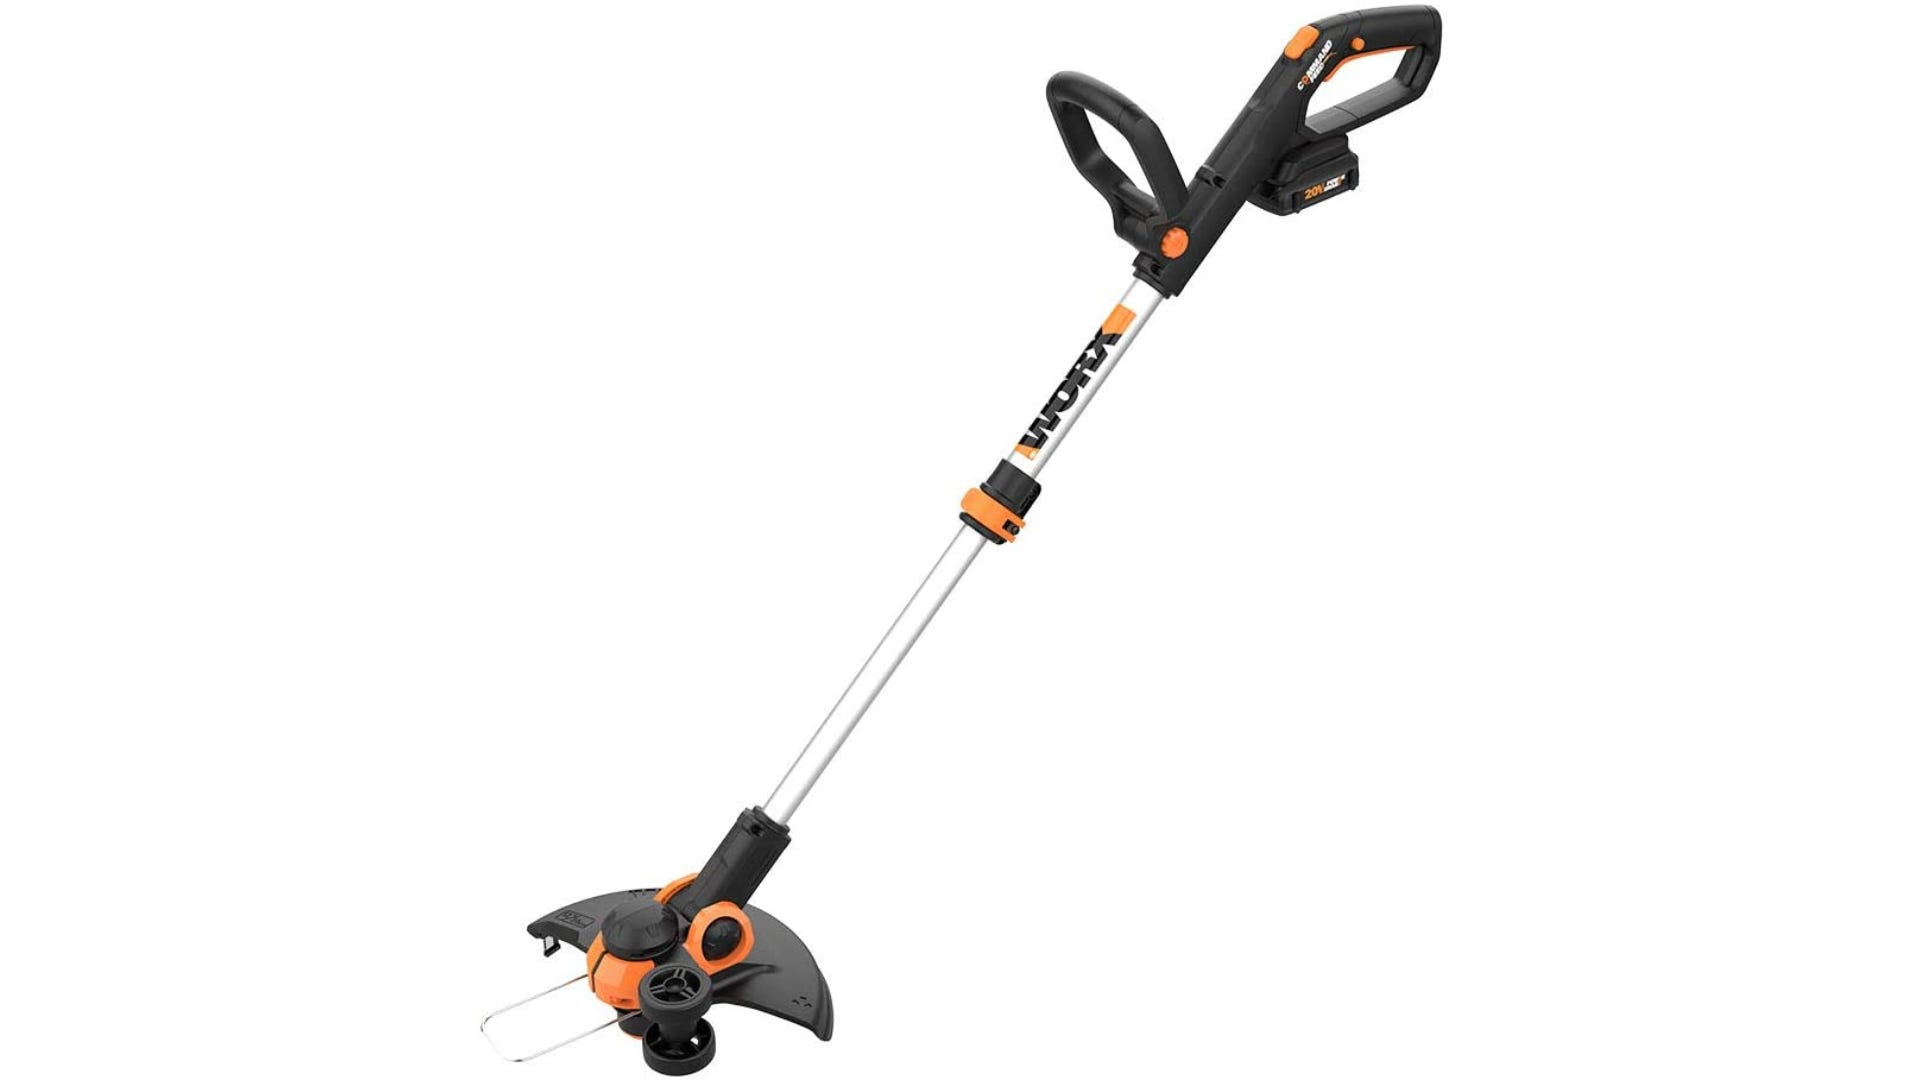 An orange and black trimmer with two handles.